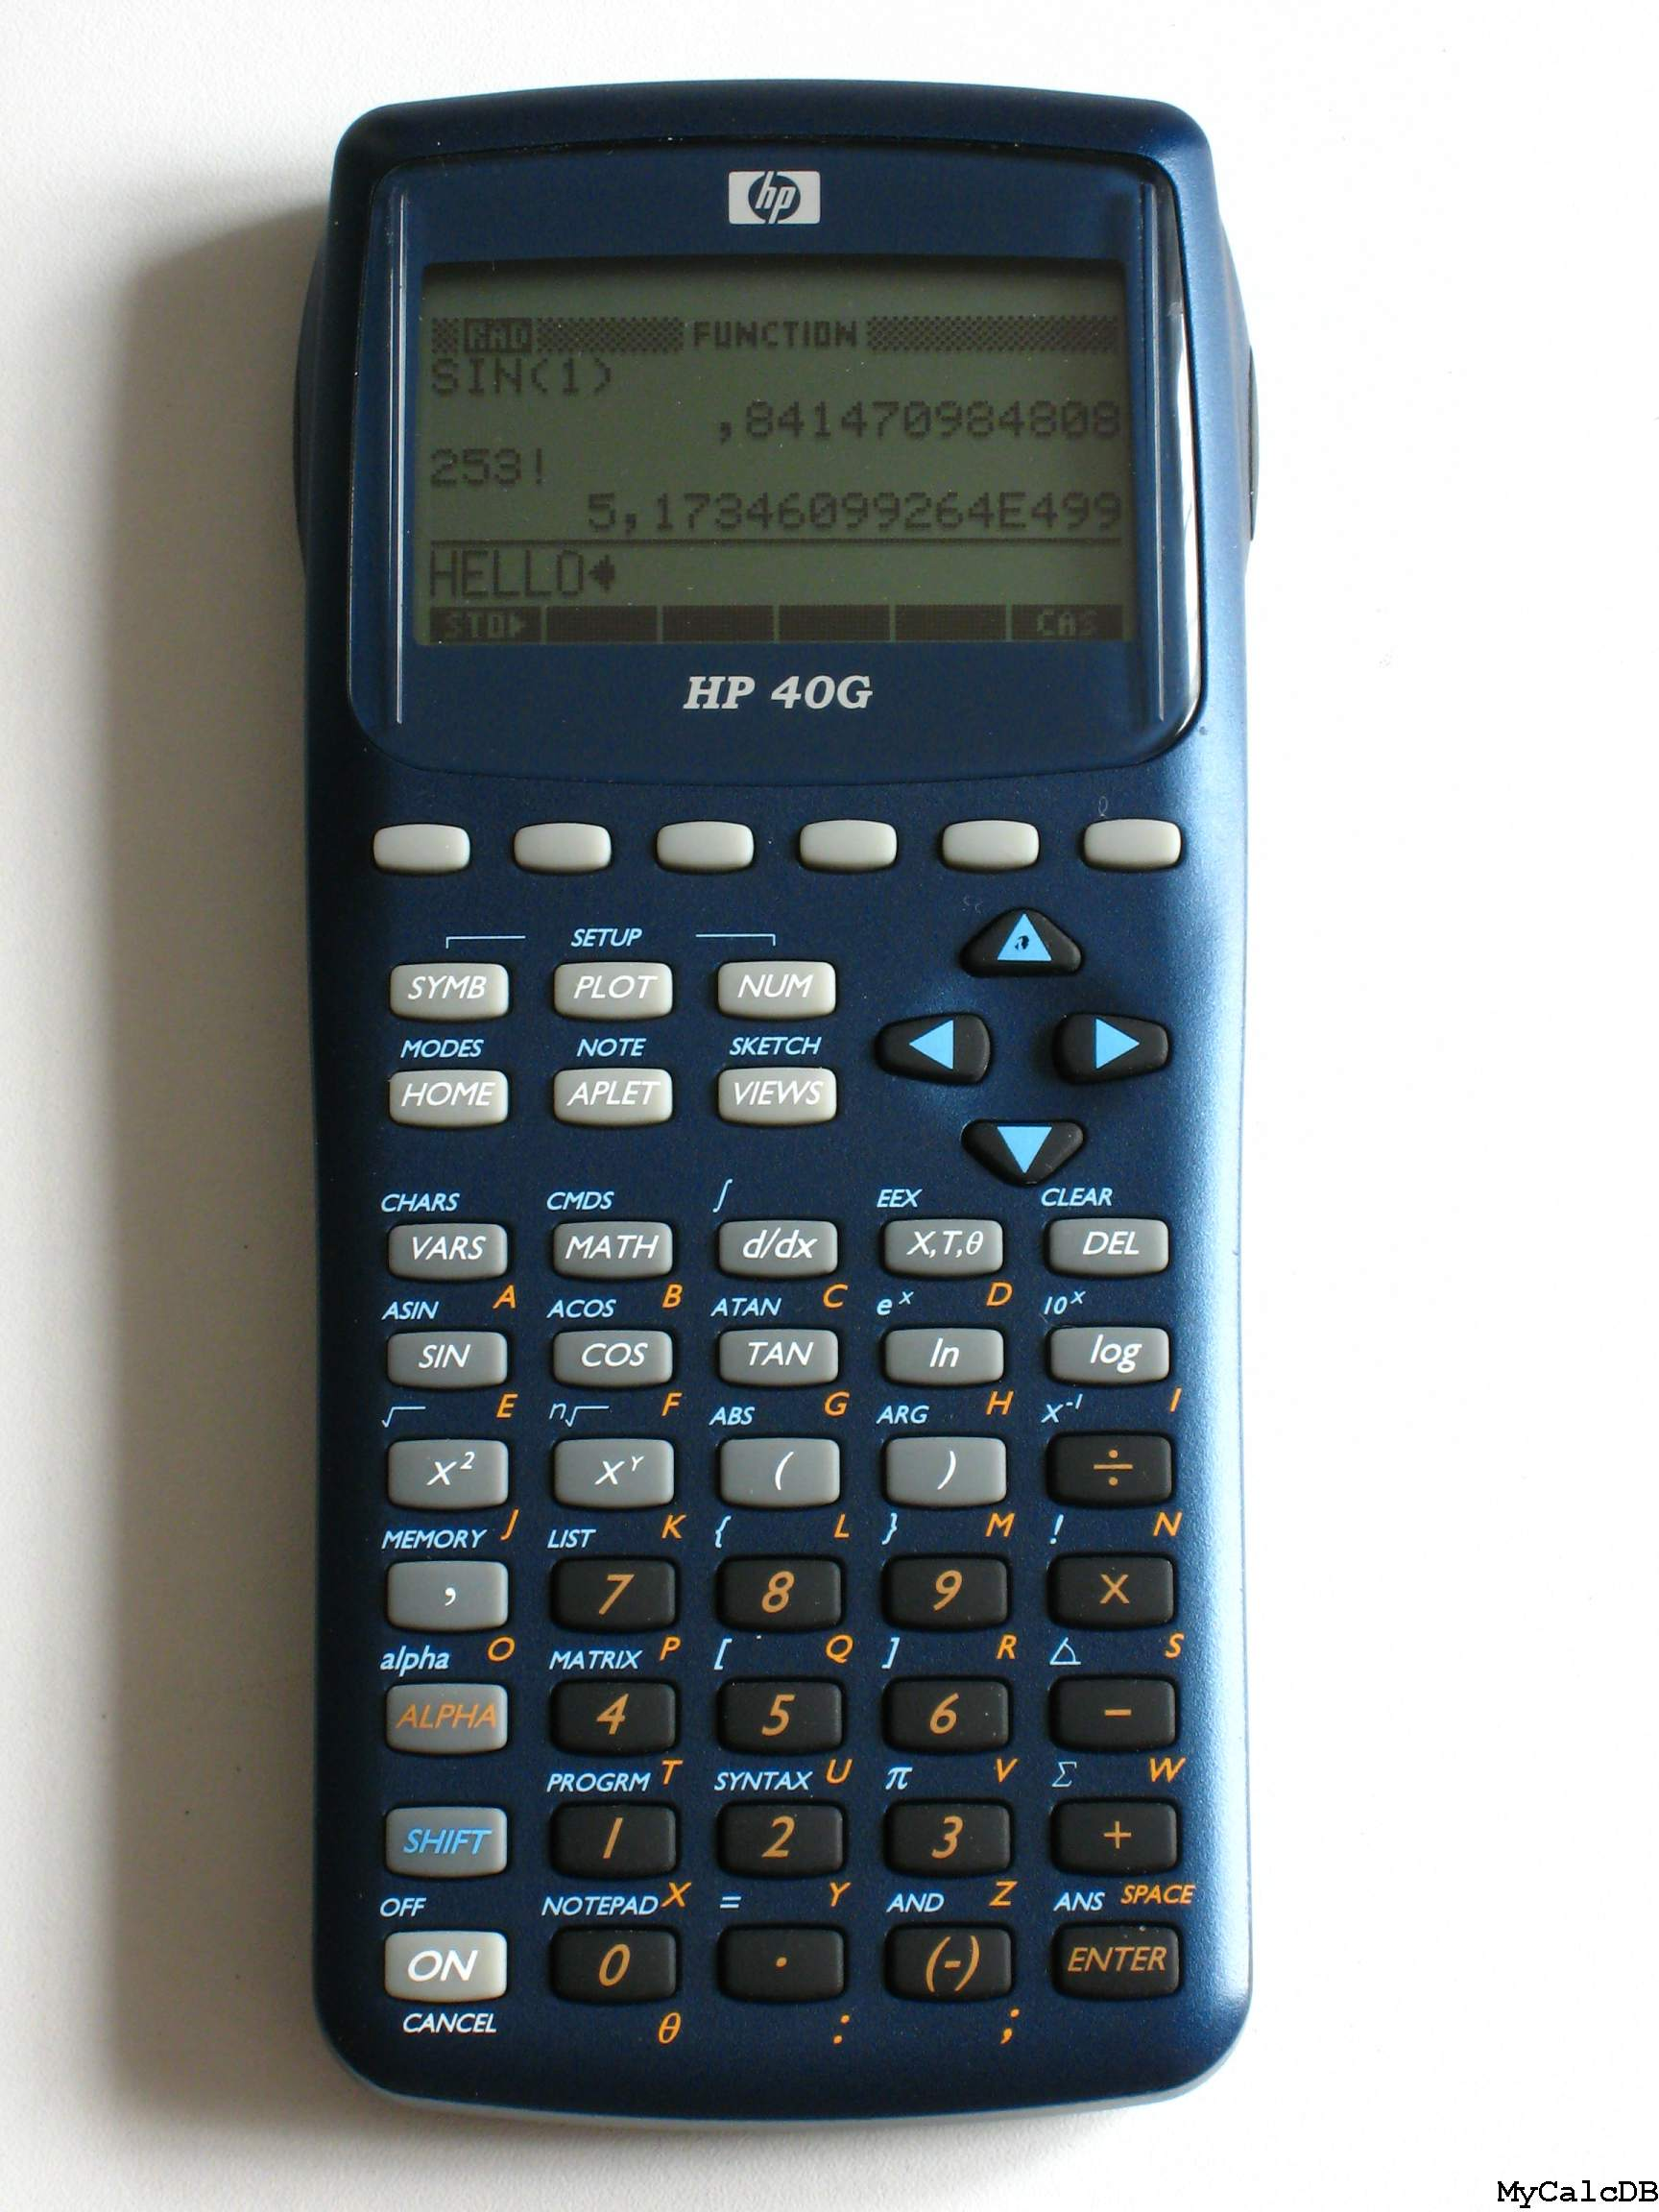 Hewlett-Packard HP 40G